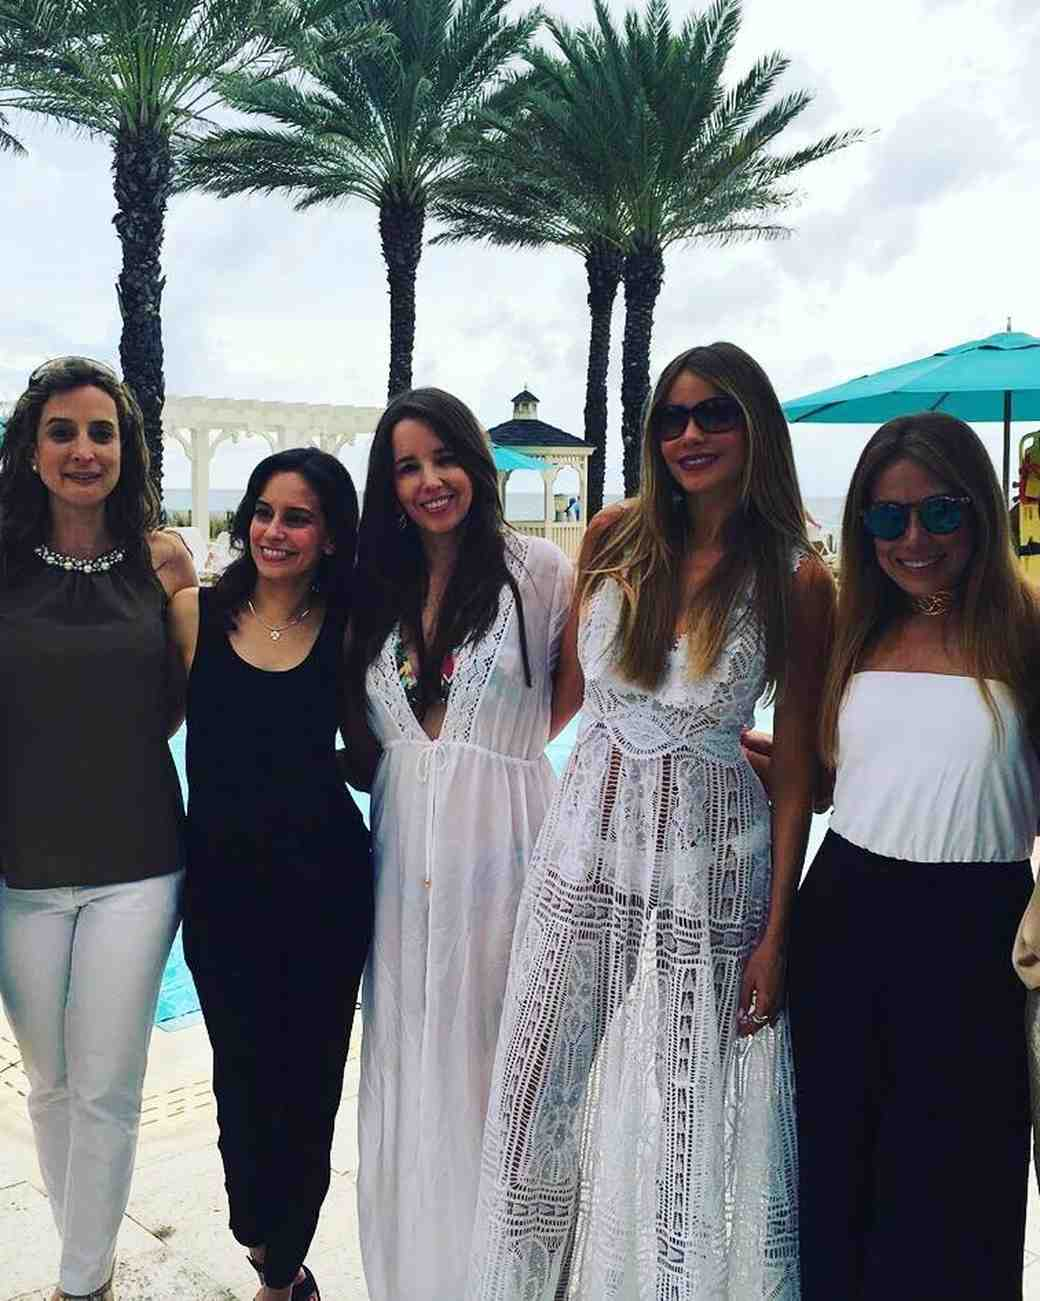 Sofia Vergara's bachelorette party